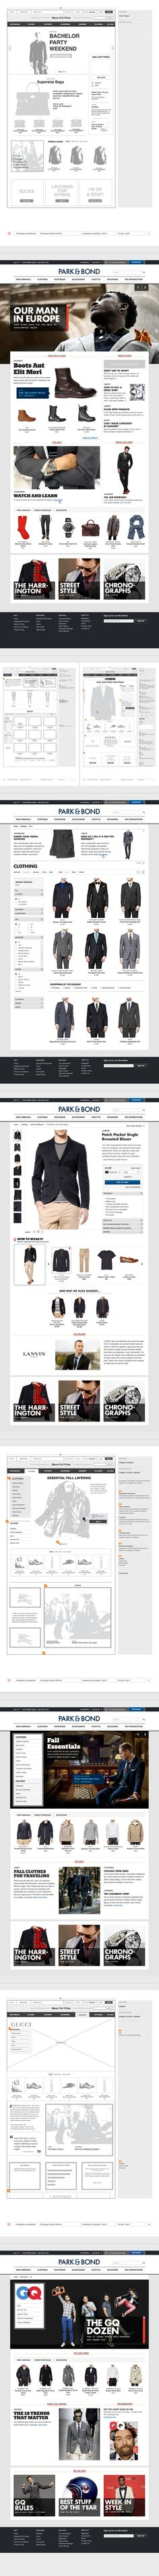 Park & Bond by Shalin Amin, via Behance  ***  Welcome Park and Bond, GILT's new foray into the world men's fashion. The site, which features a familiar list of more than 100 brands, including the likes of Thom Browne, McQueen, and N. Hoolywood, is a new shopping avenue in the content-retail space...